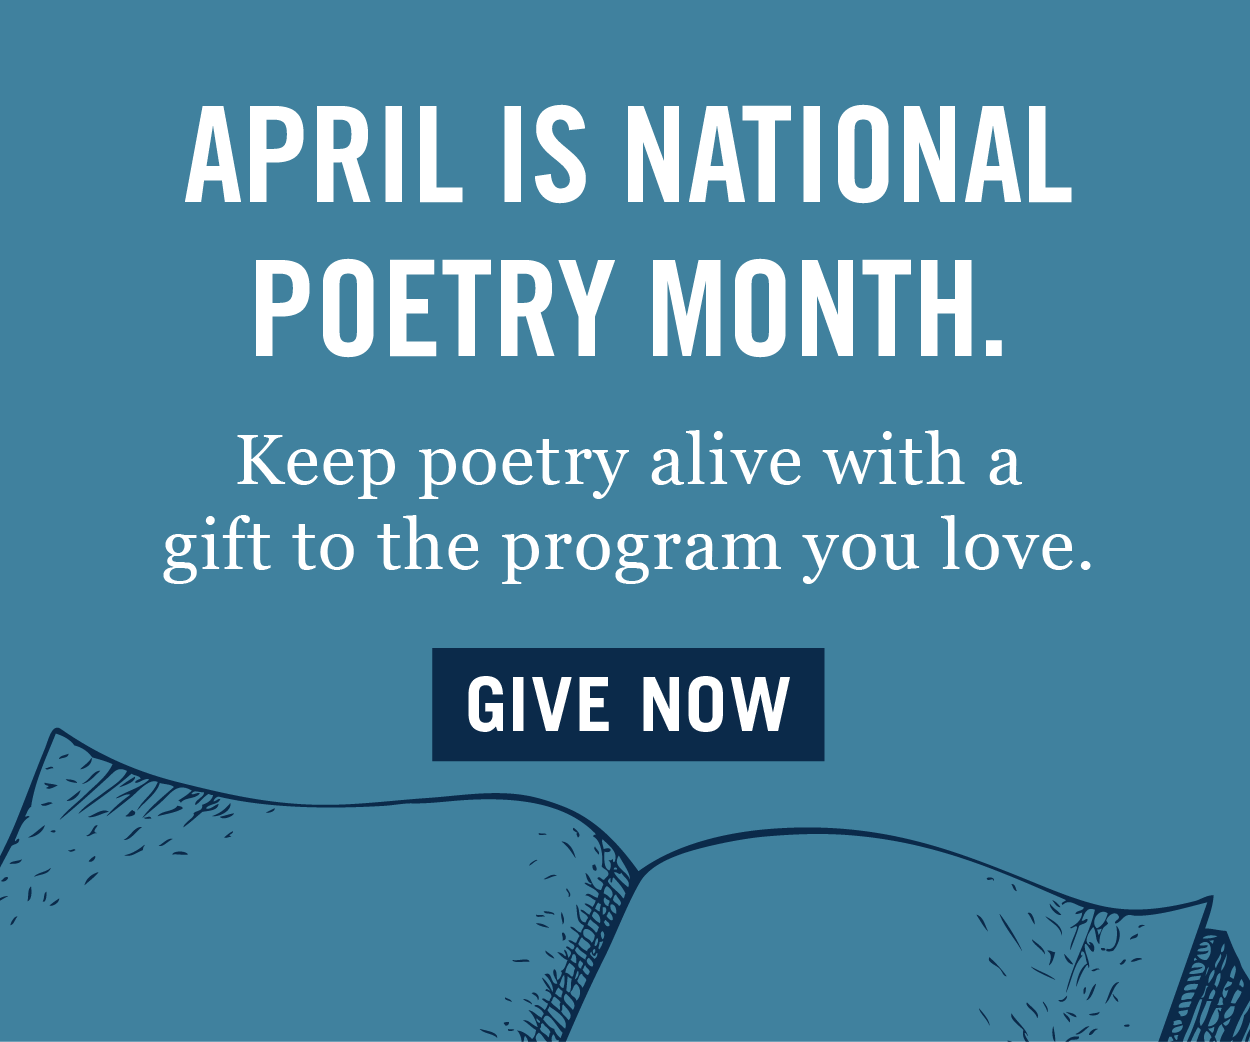 April is National Poetry Month - Keep poetry alive with a gift to the program you love - Give now